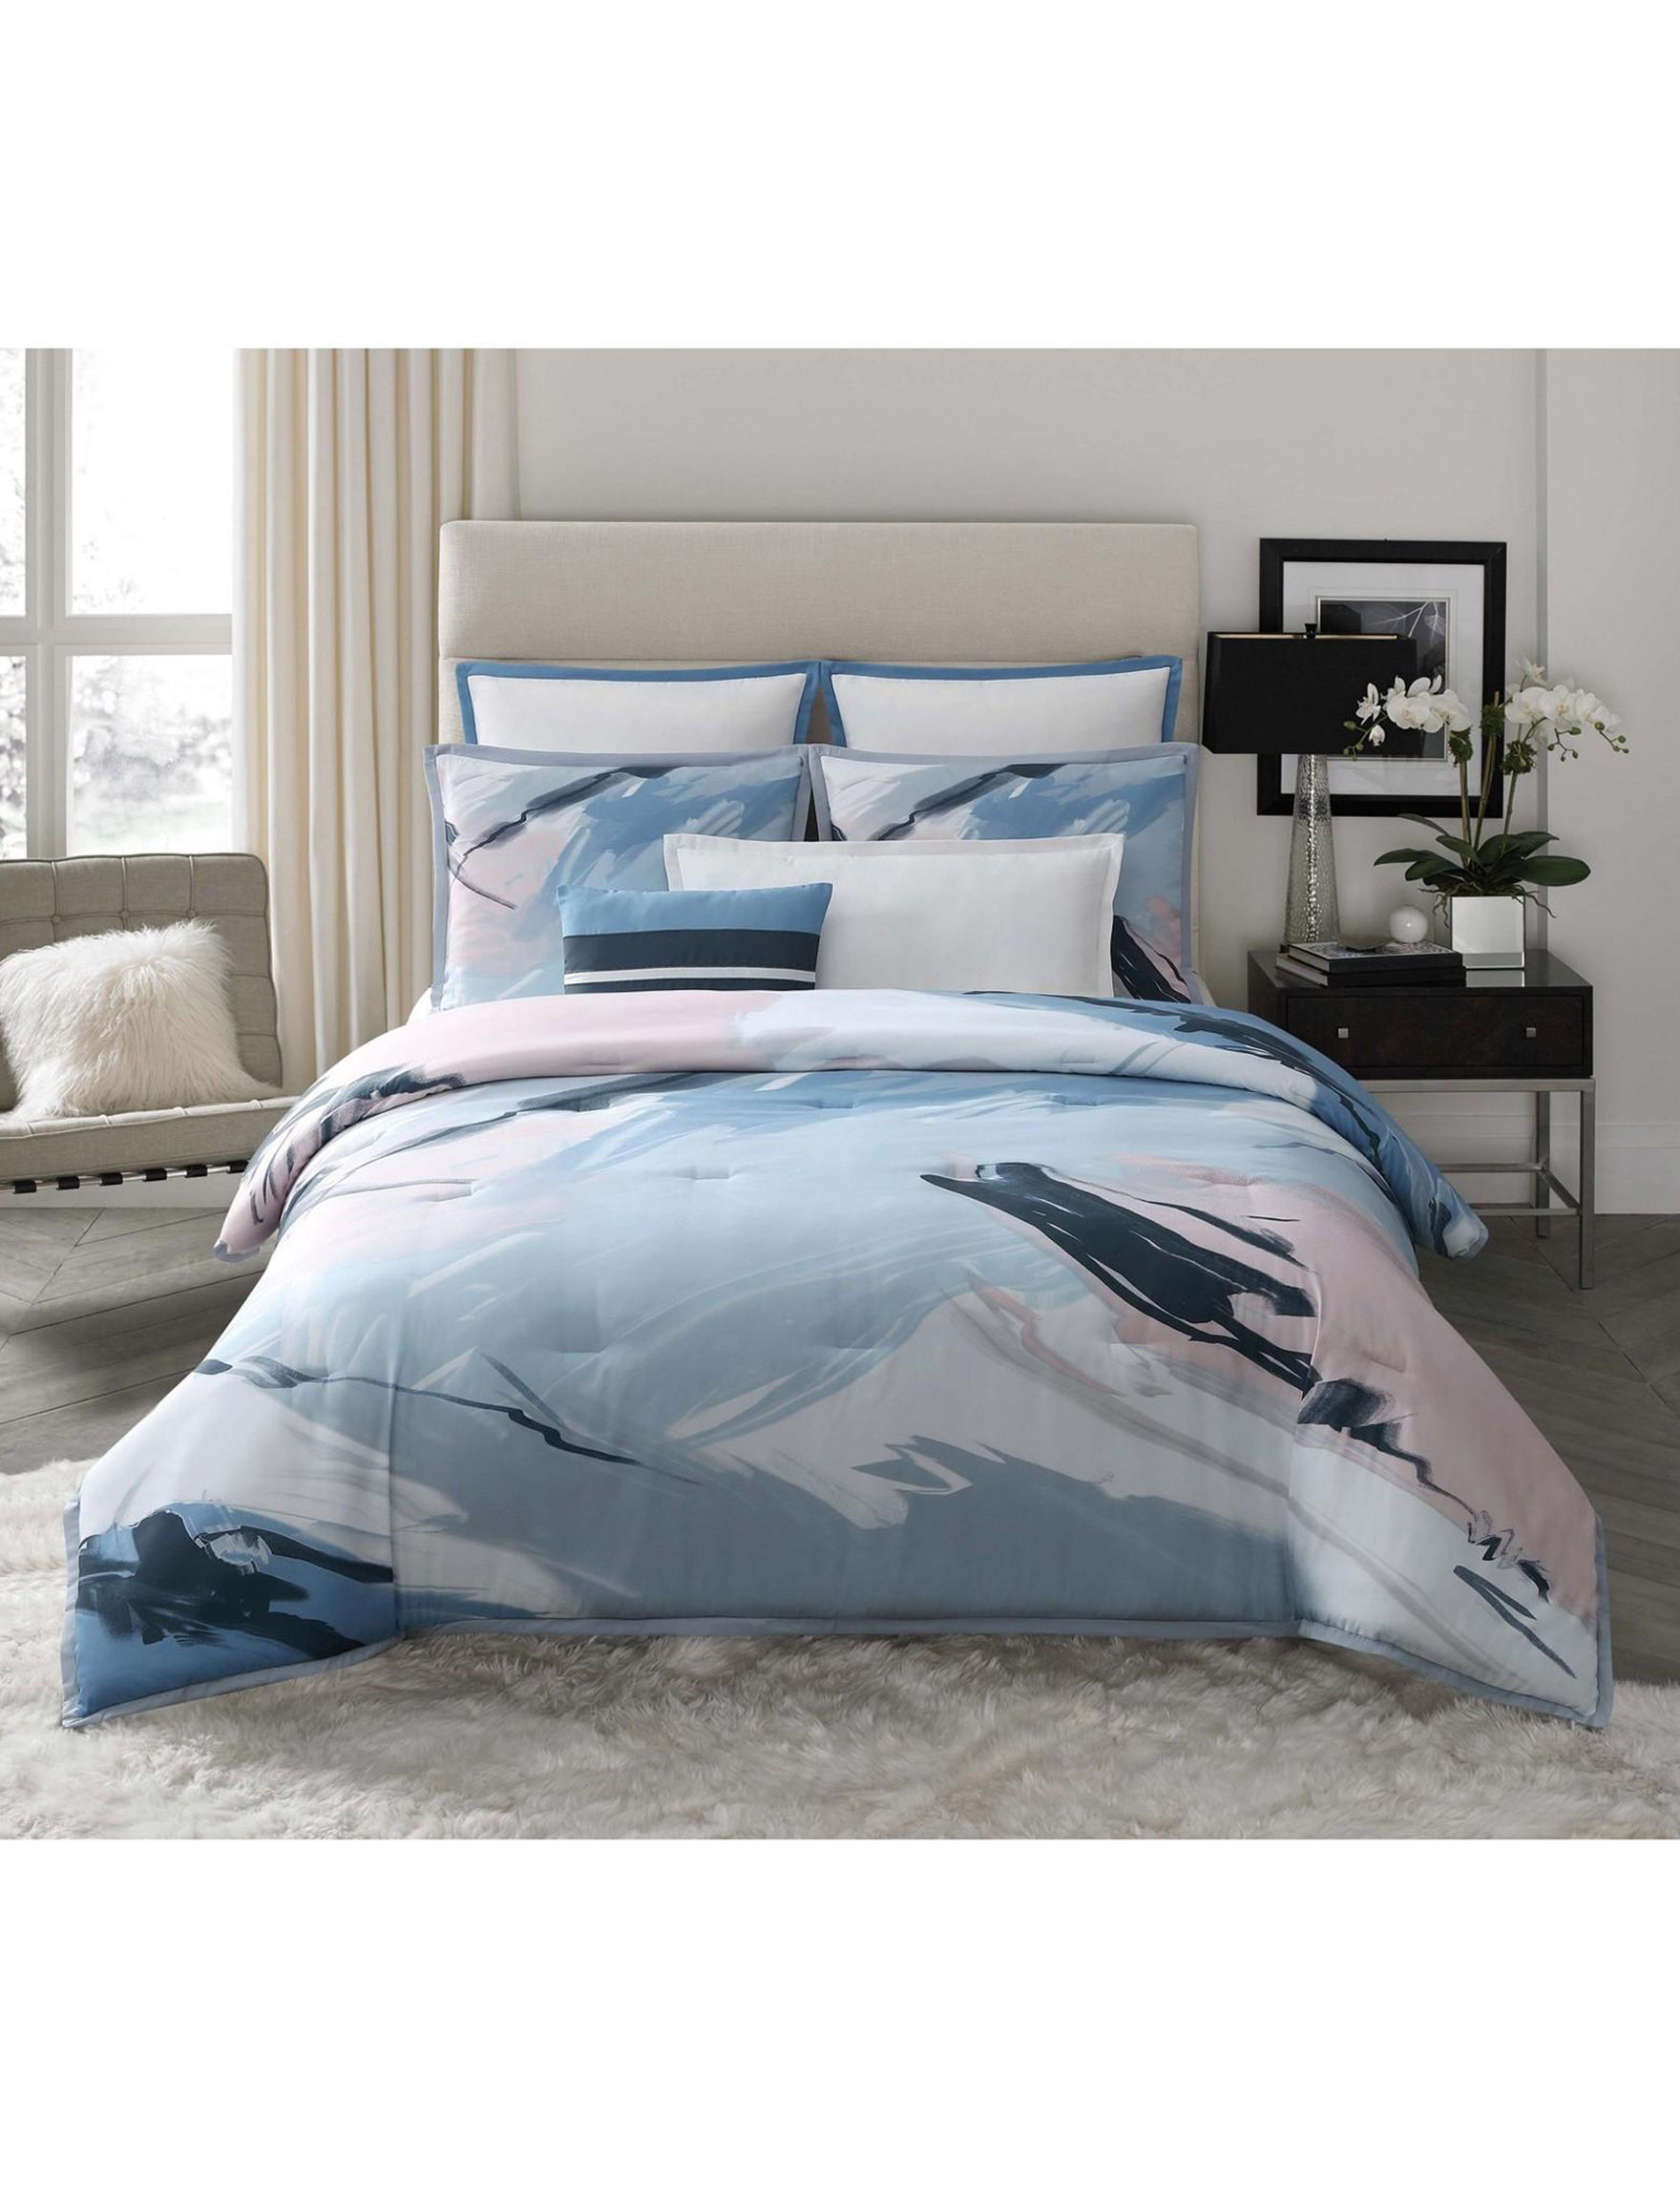 Vince Camuto Pink / Grey Comforters & Comforter Sets